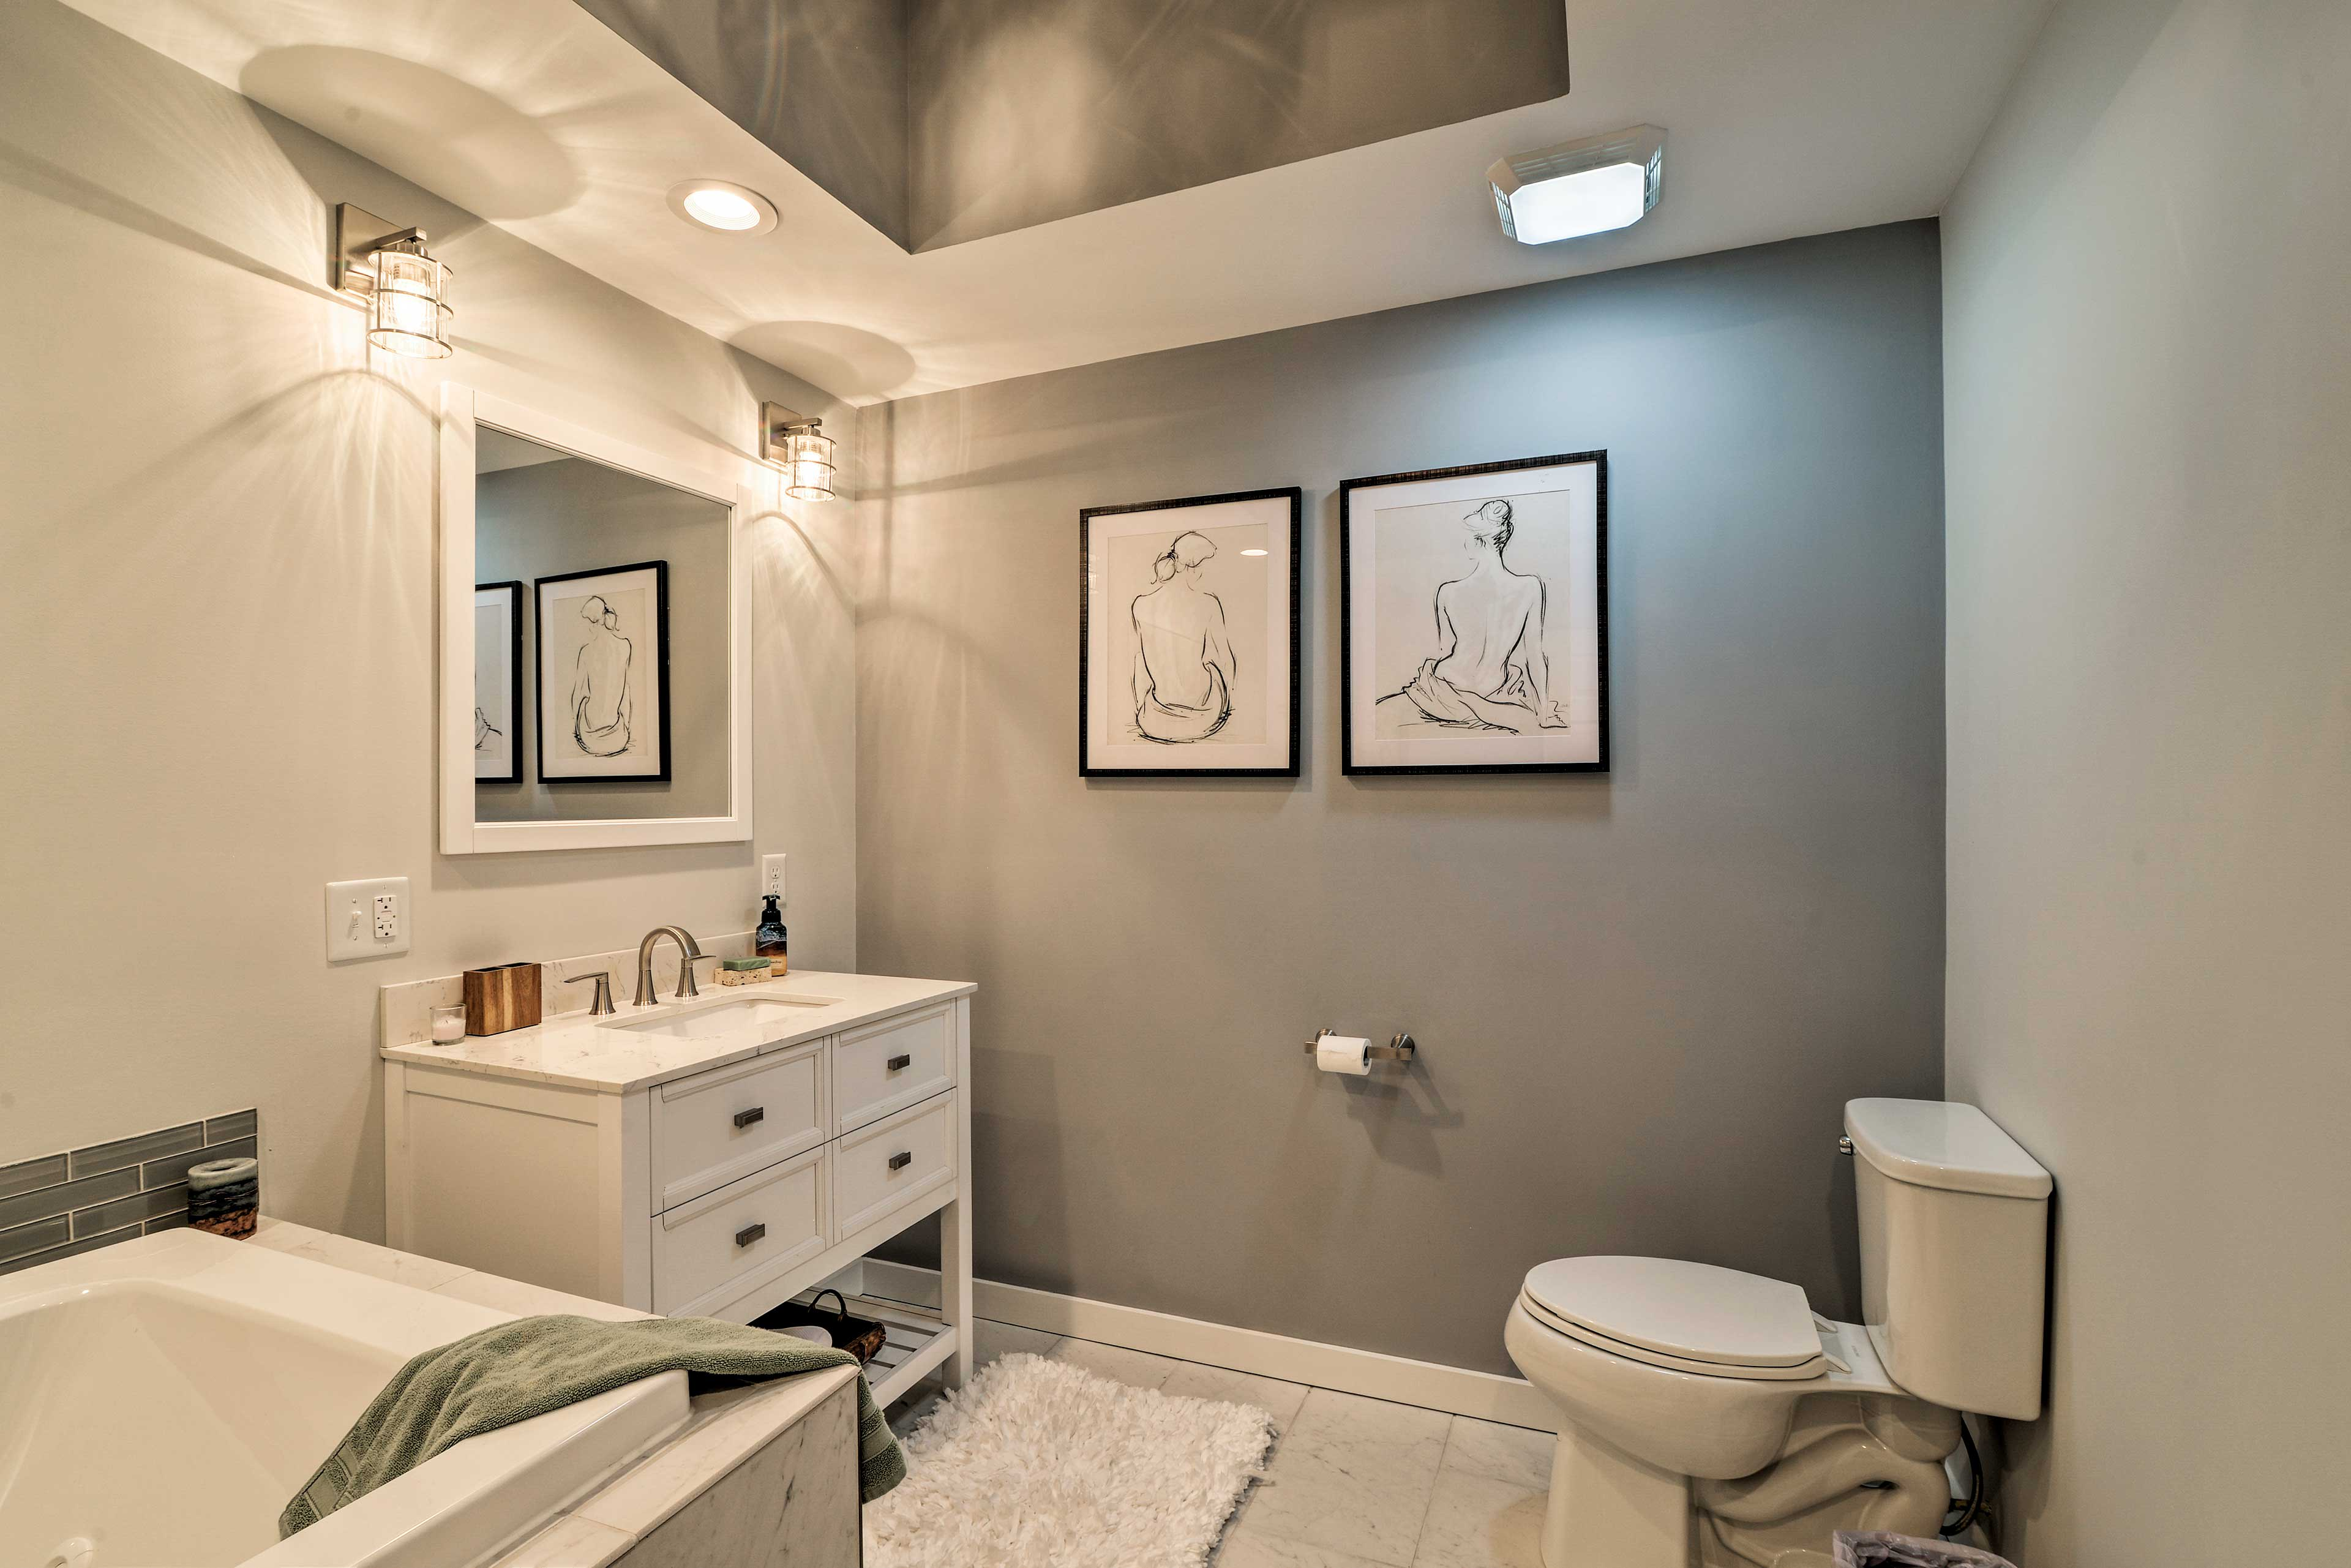 The downstairs also offers a luxurious full bath complete with a jetted tub.